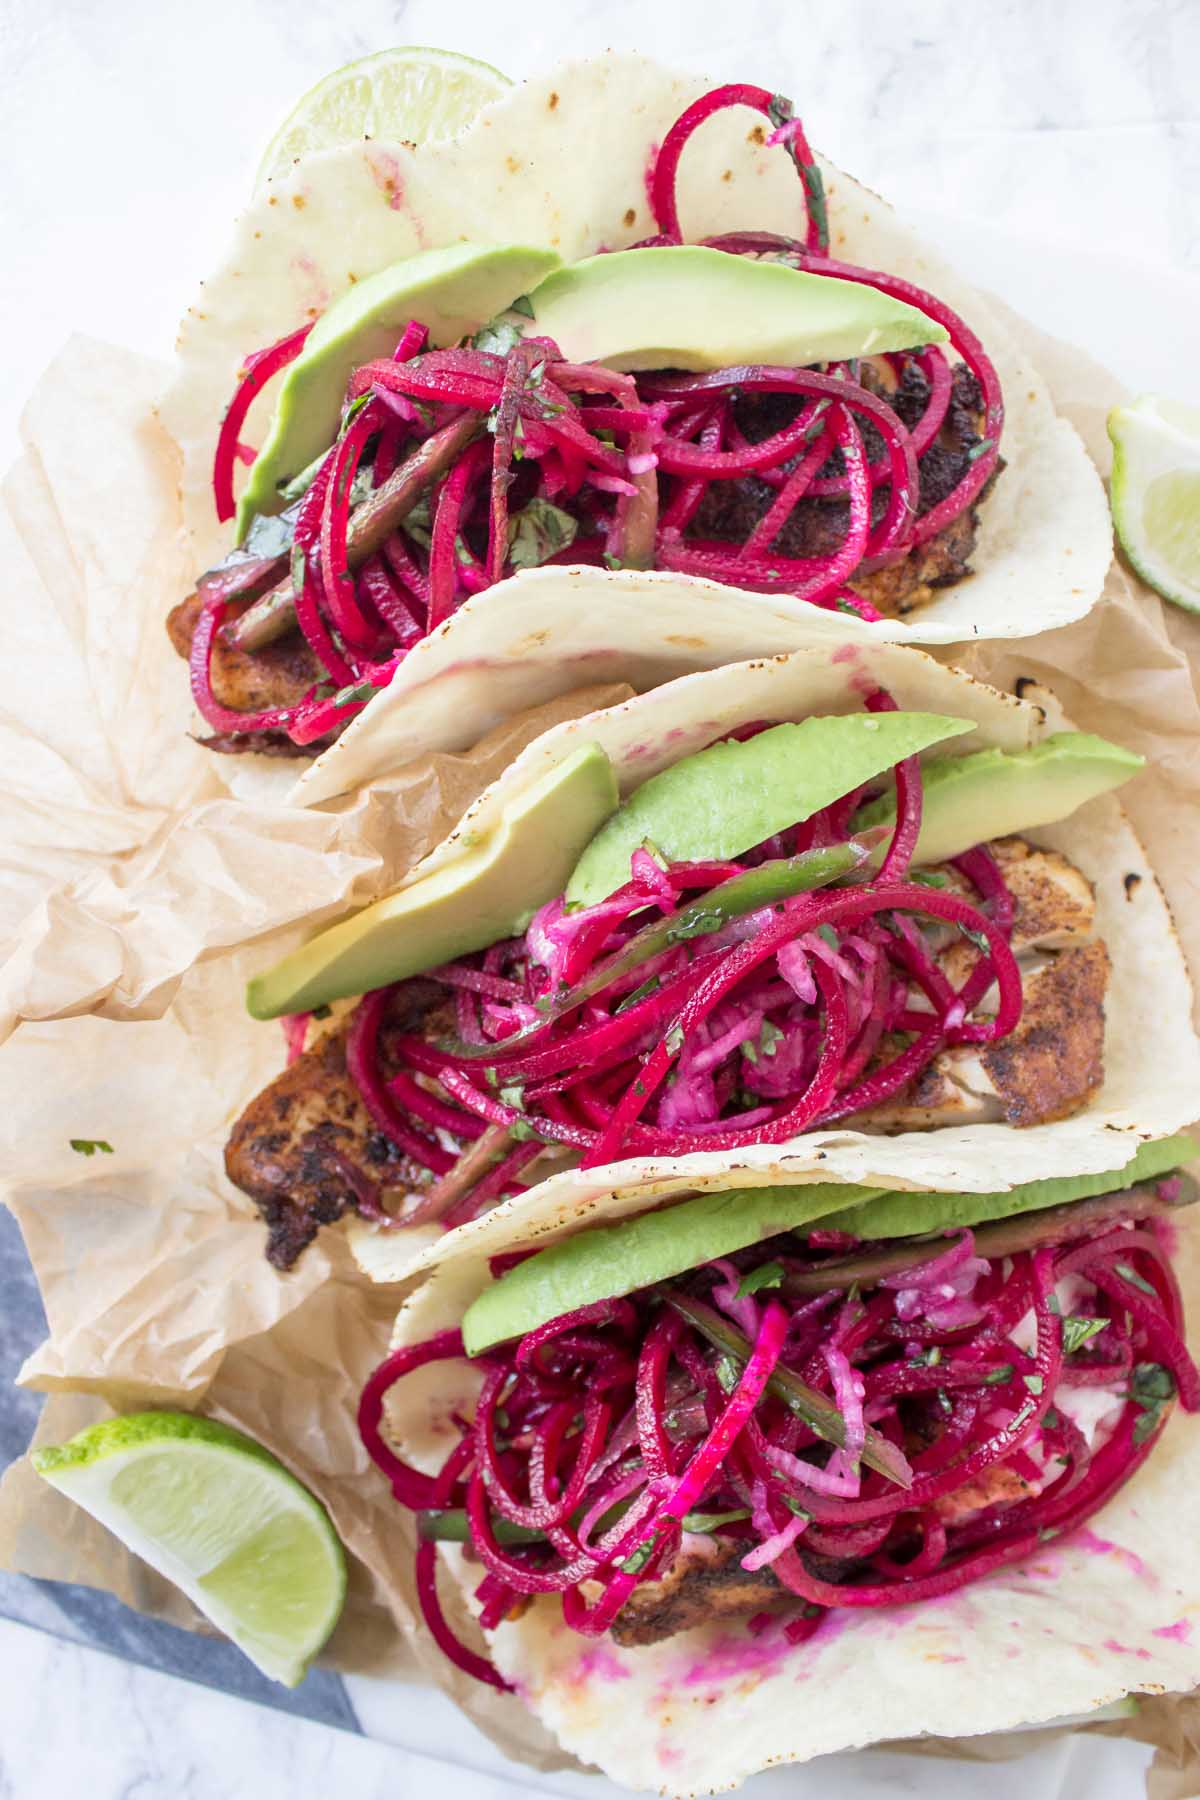 Spicy Fish Tacos With Beet Slaw